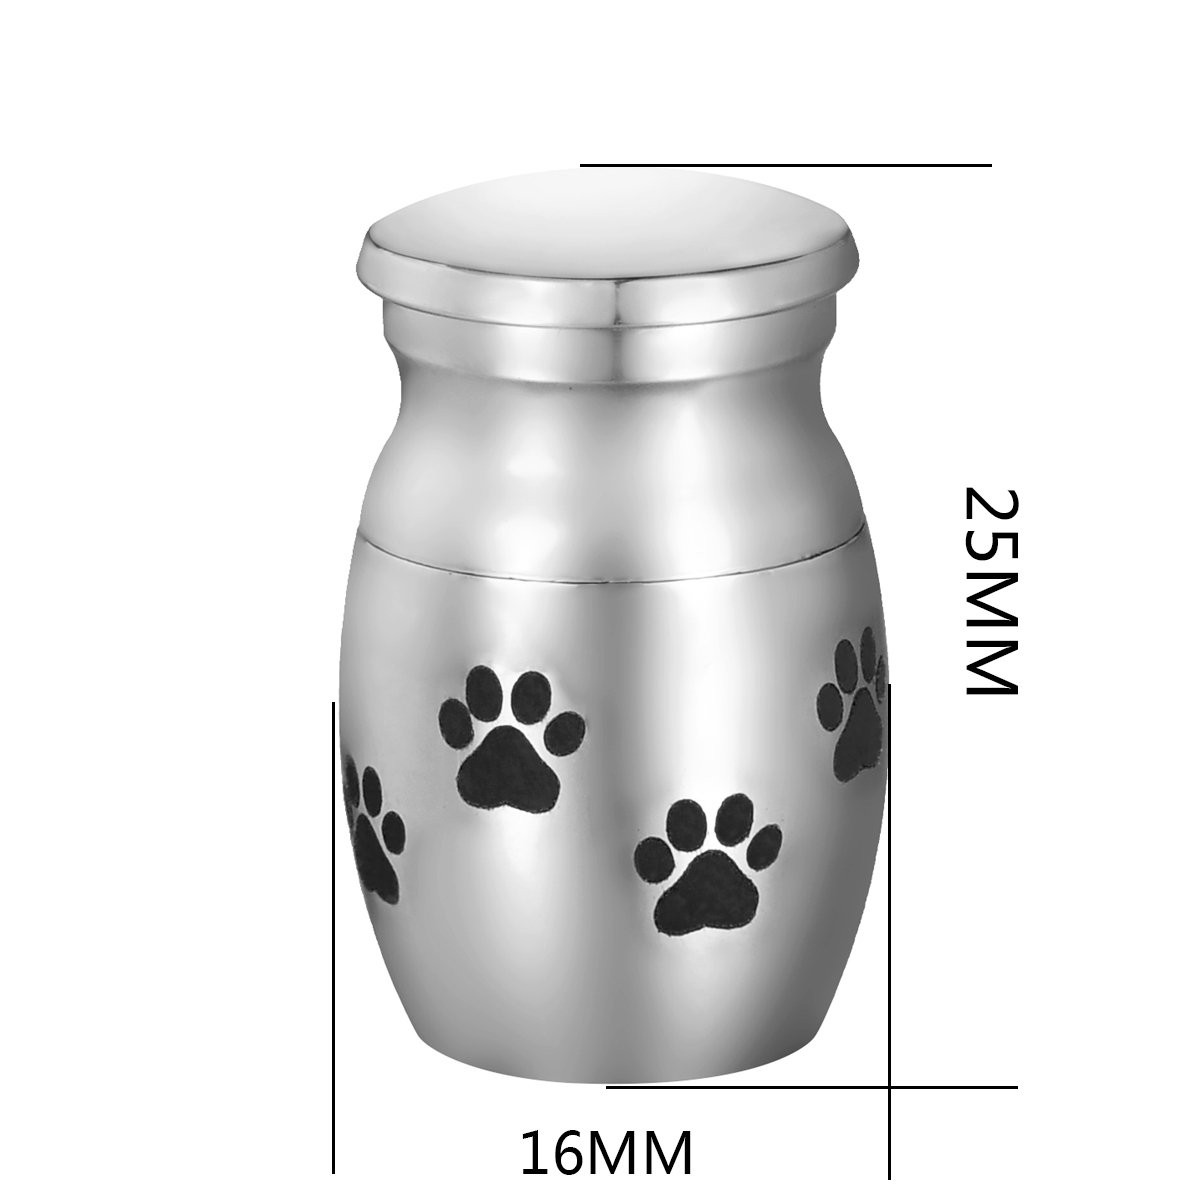 Tiny Small Cremation Urn For Human or Pet Ashes Waterproof Memory Funeral Keepsake Stainless Steel Pet Paw#2